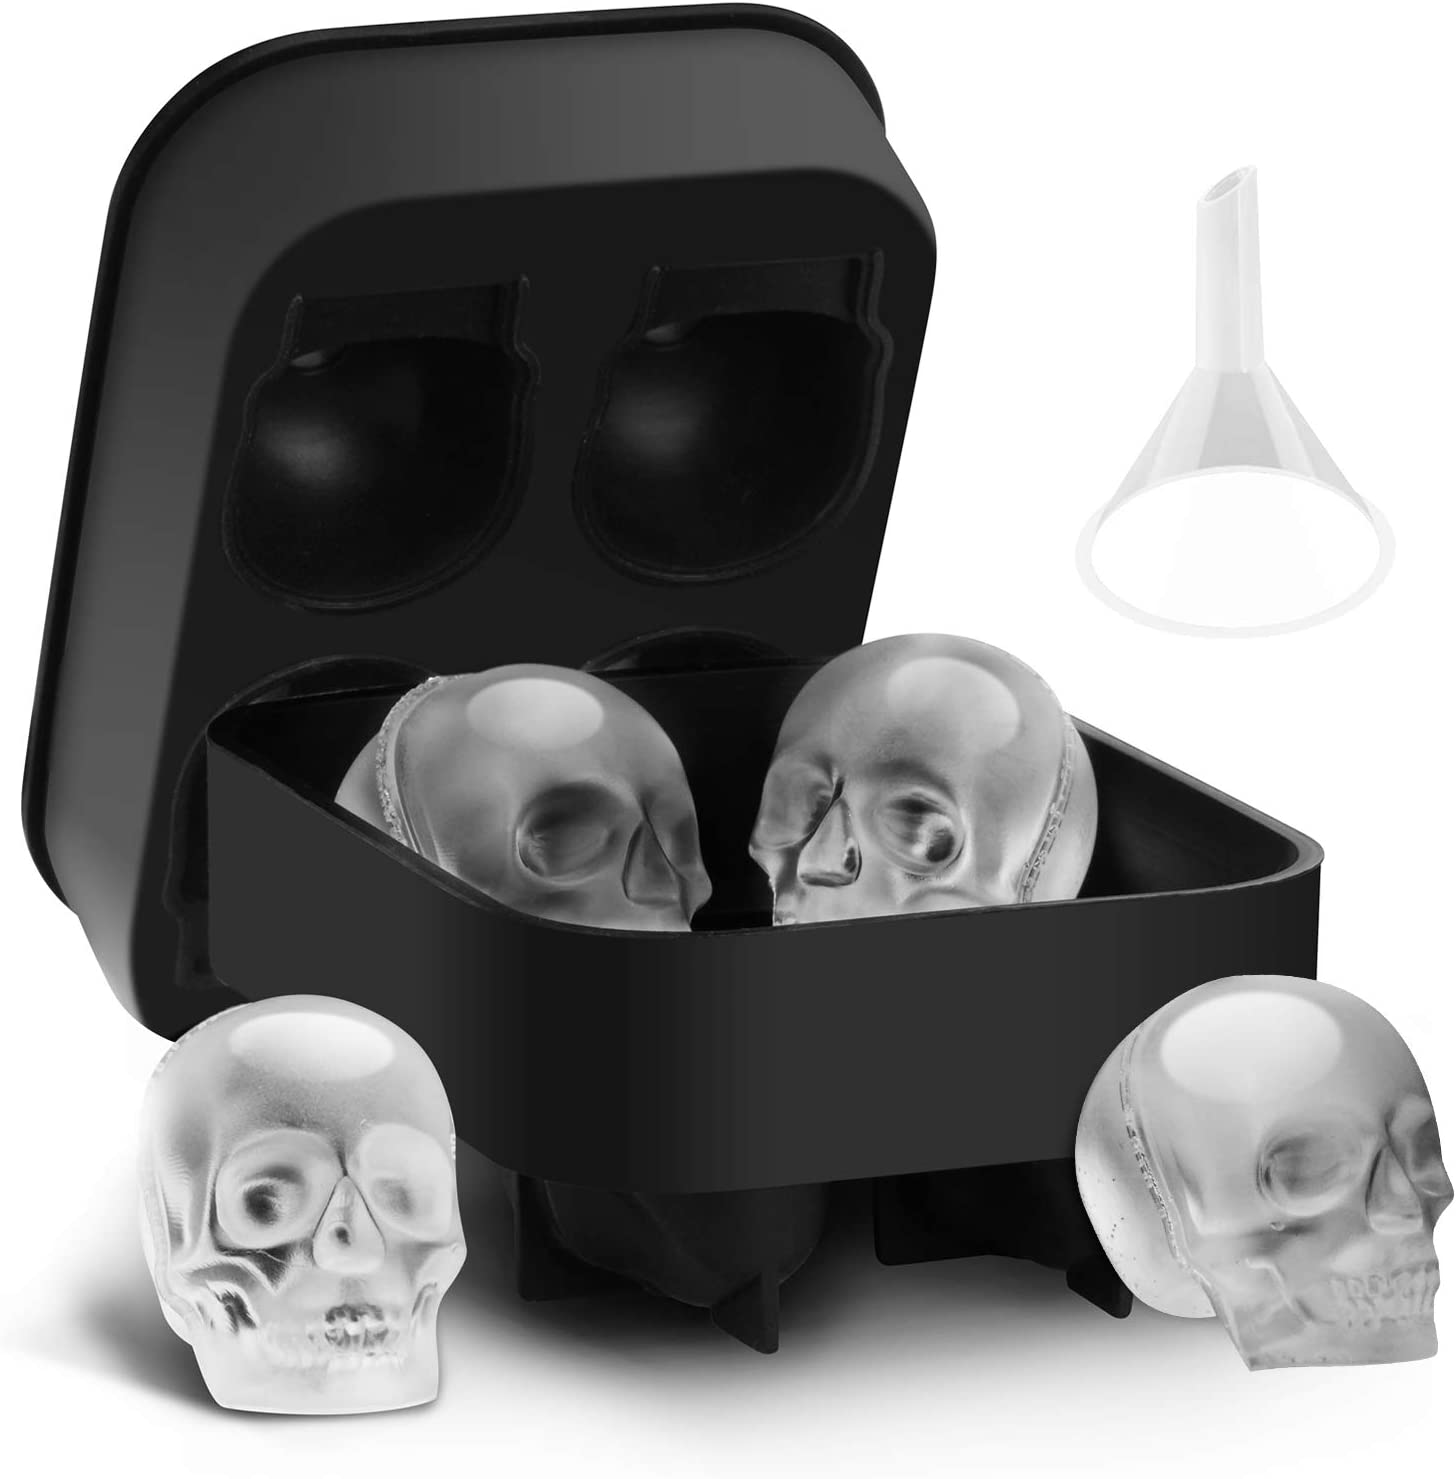 Hot Skull Shape 3D Ice Cube Mold Maker Bar Party Silicone Trays Mould Tool Gift